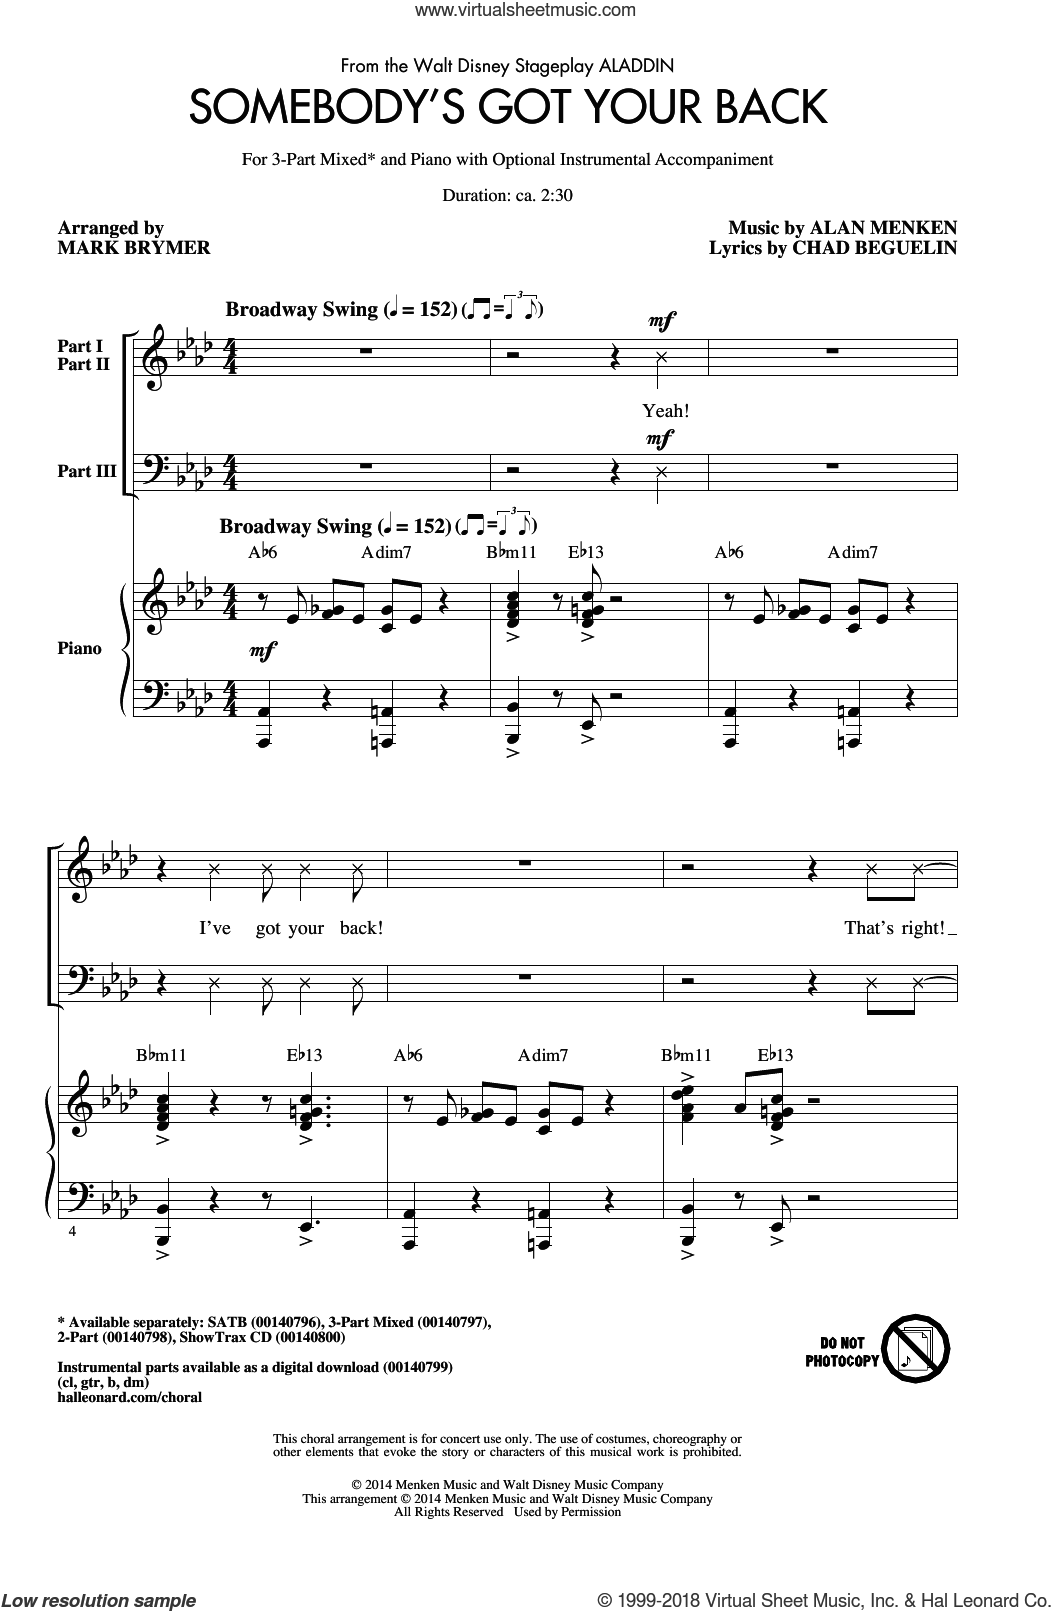 Somebody's Got Your Back sheet music for choir (3-Part Mixed) by Alan Menken, Mark Brymer and Chad Beguelin, intermediate